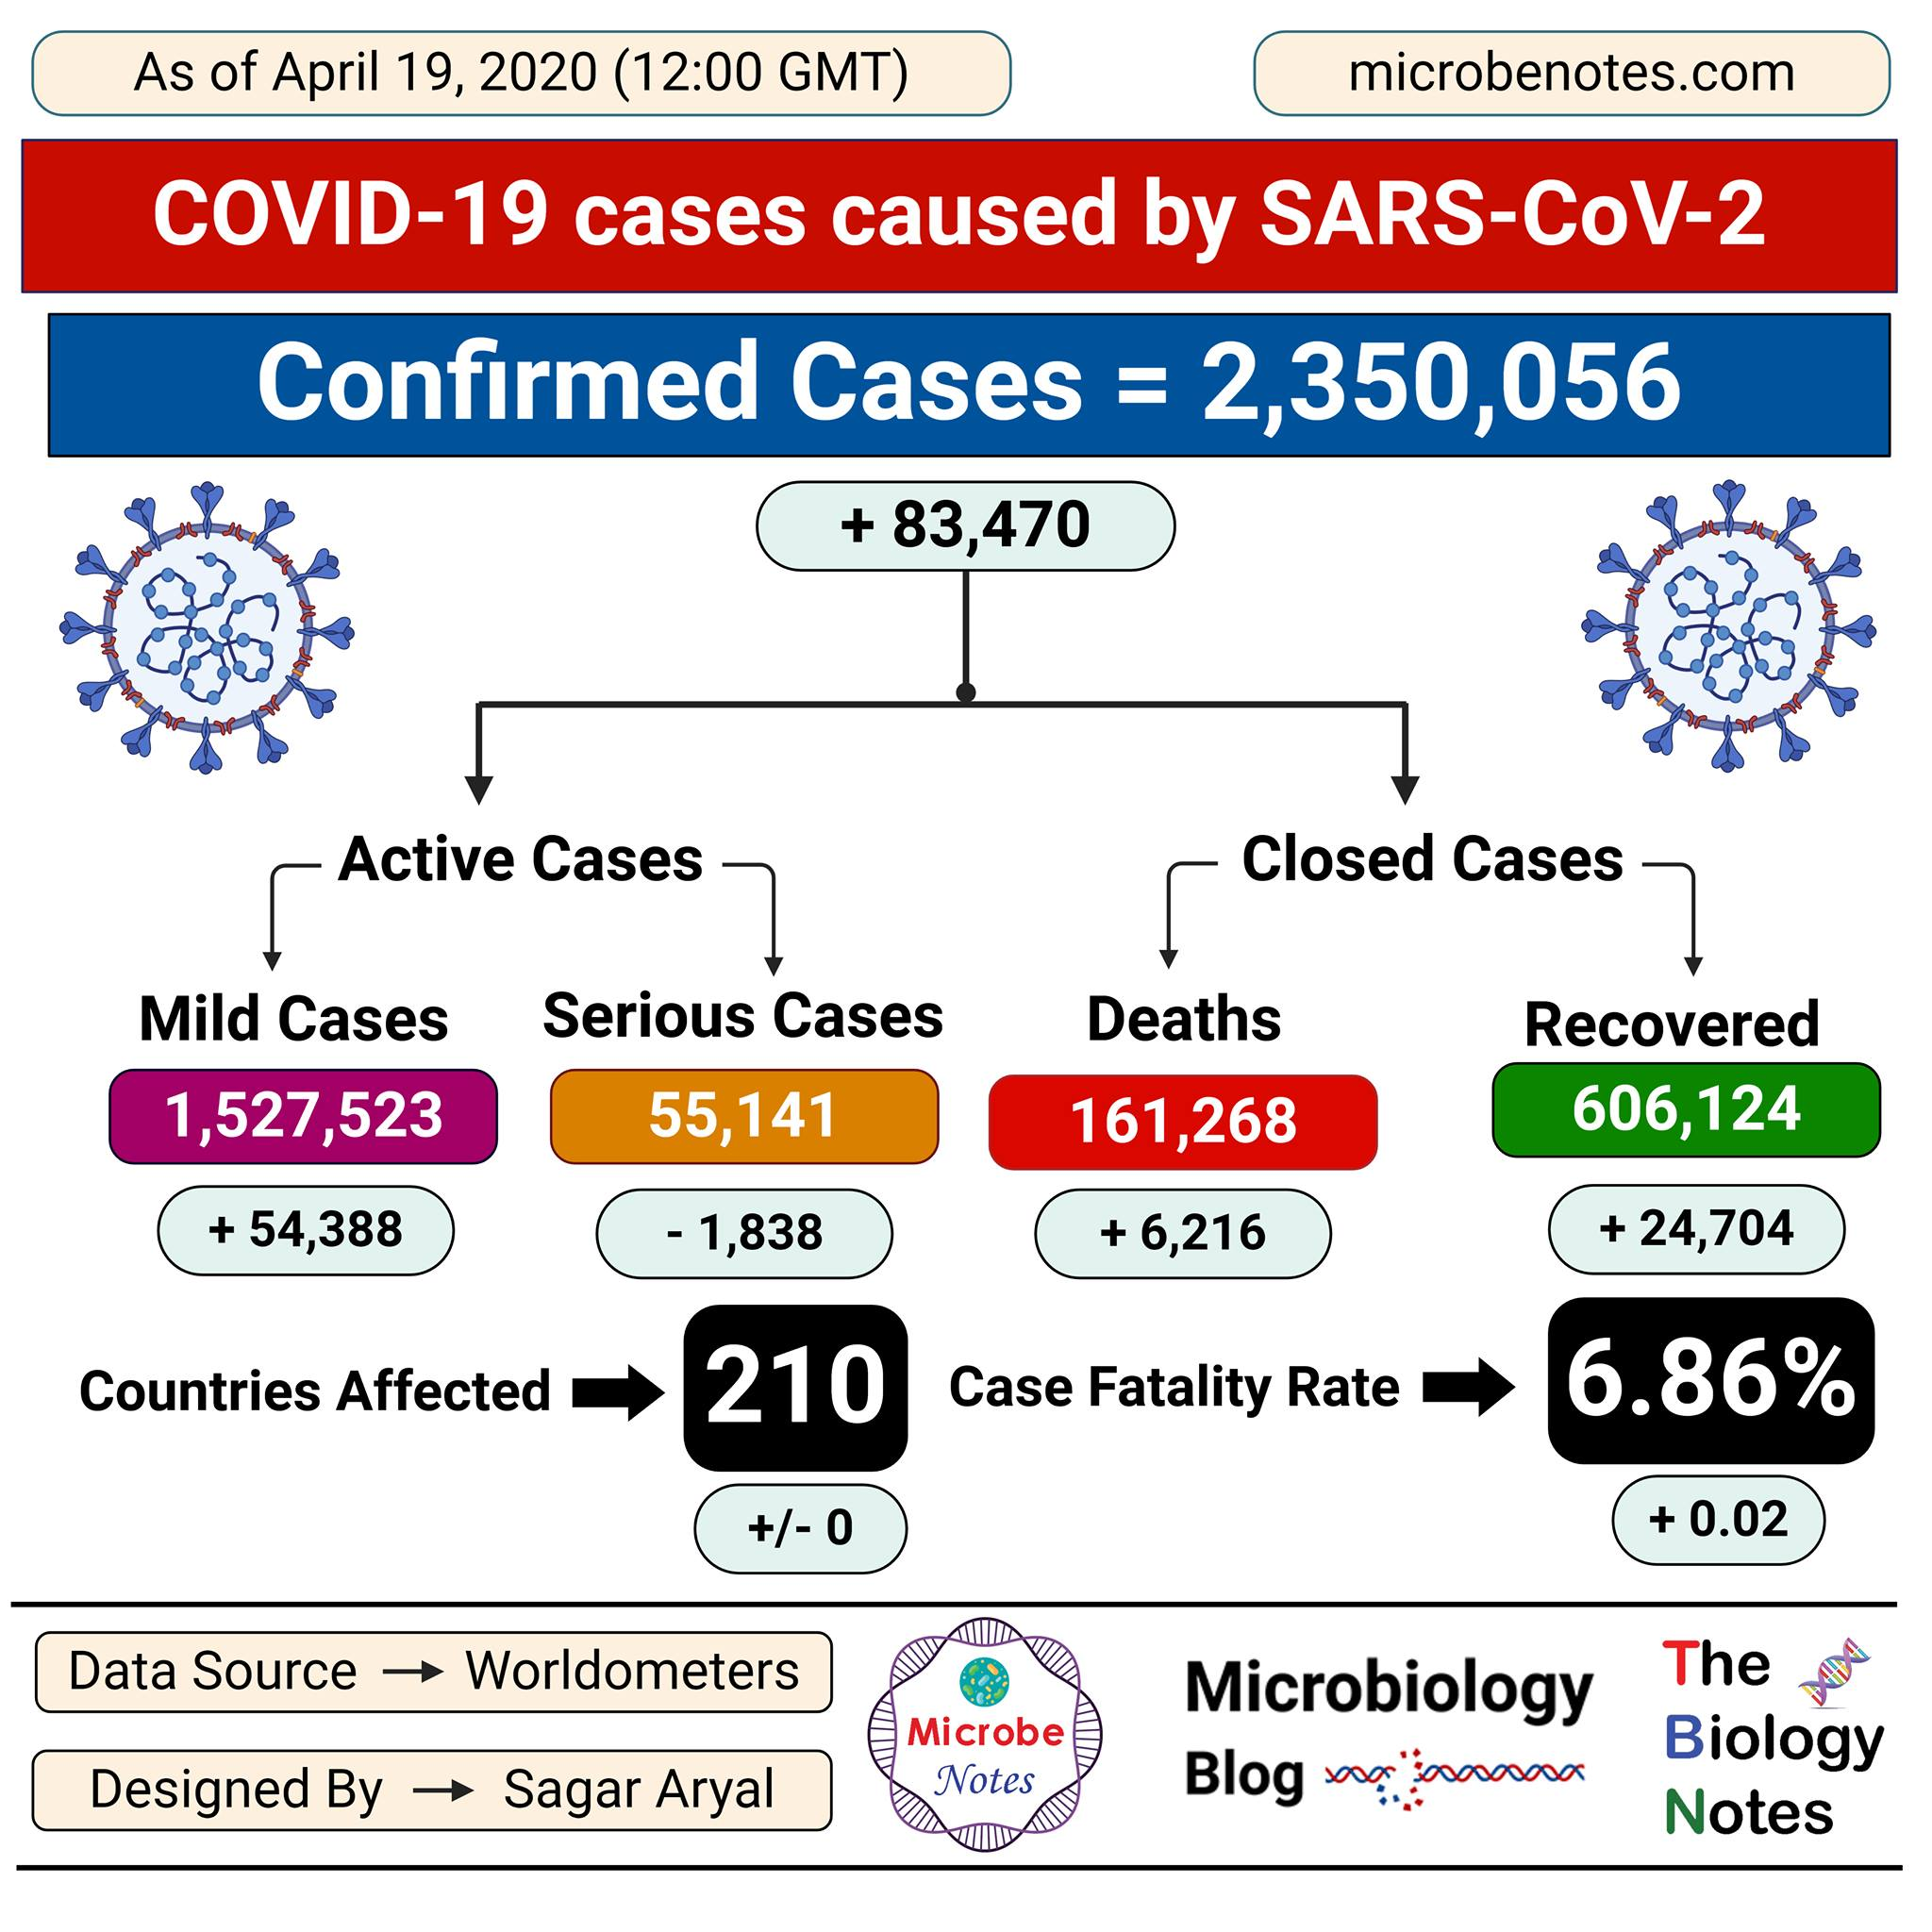 Epidemiology of COVID-19 caused by SARS-CoV-2 as of April 19, 2020